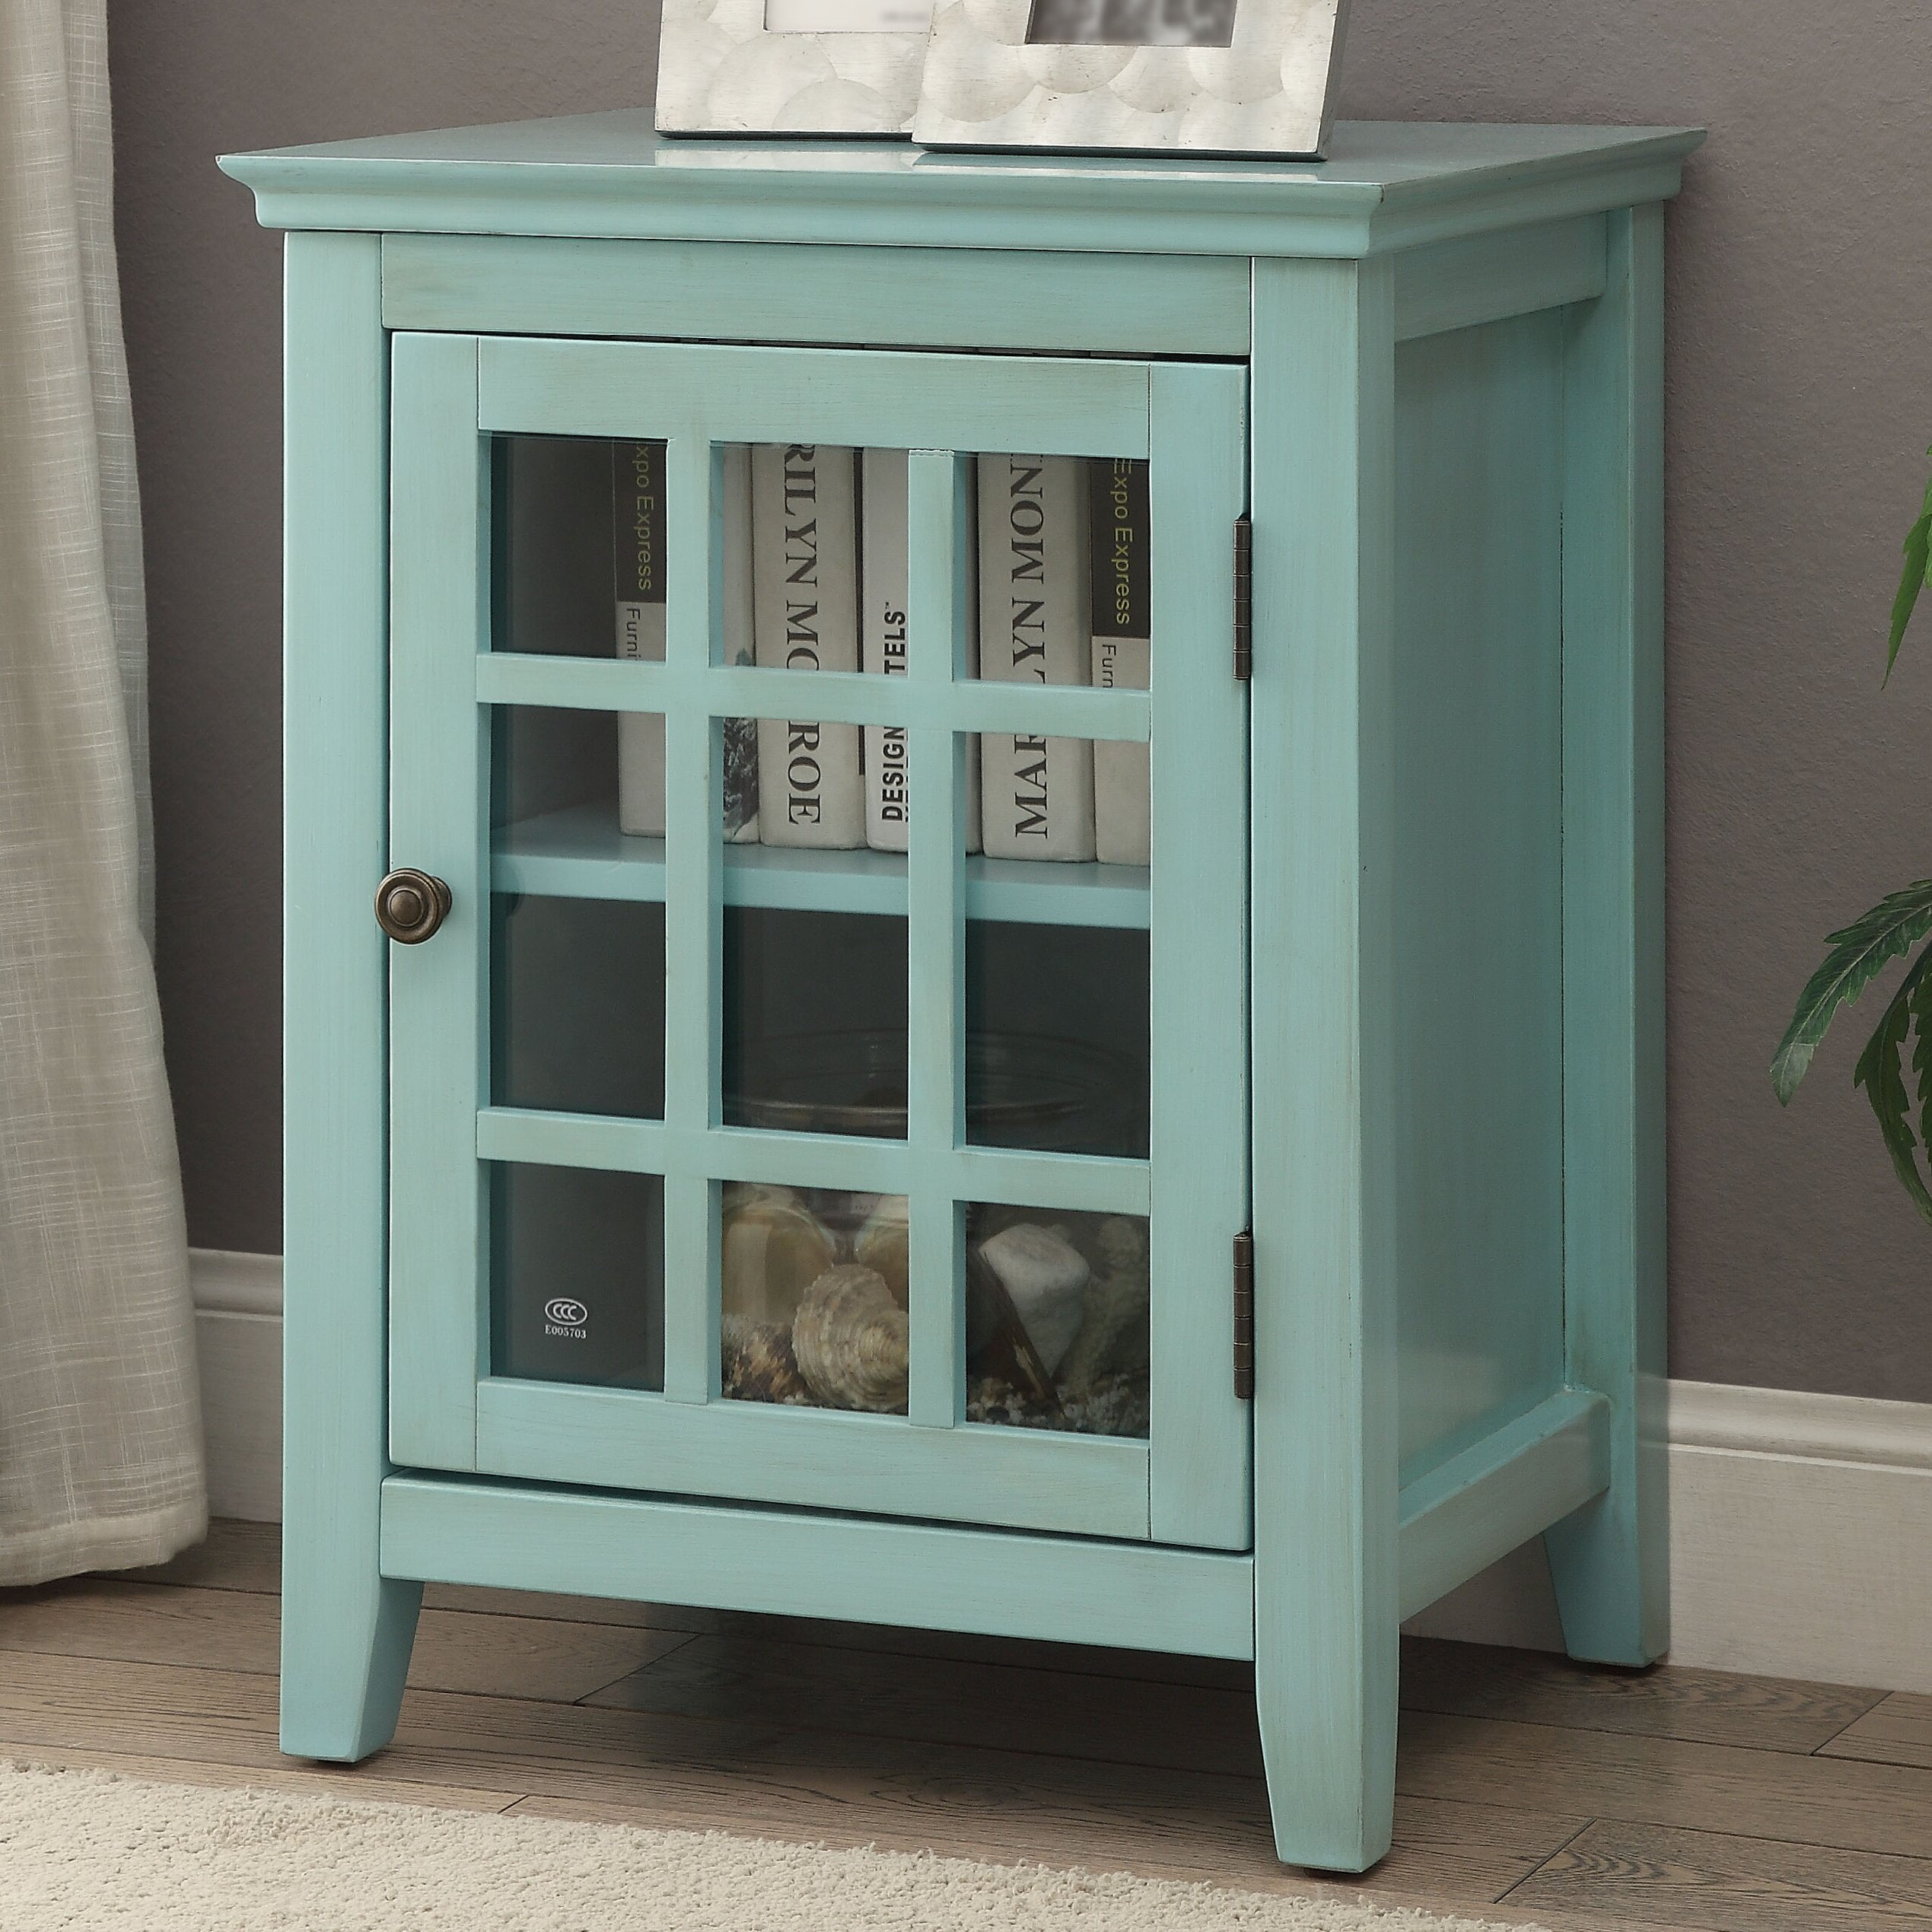 Beachcrest home naples park antique single door cabinet for One day doors and closets reviews